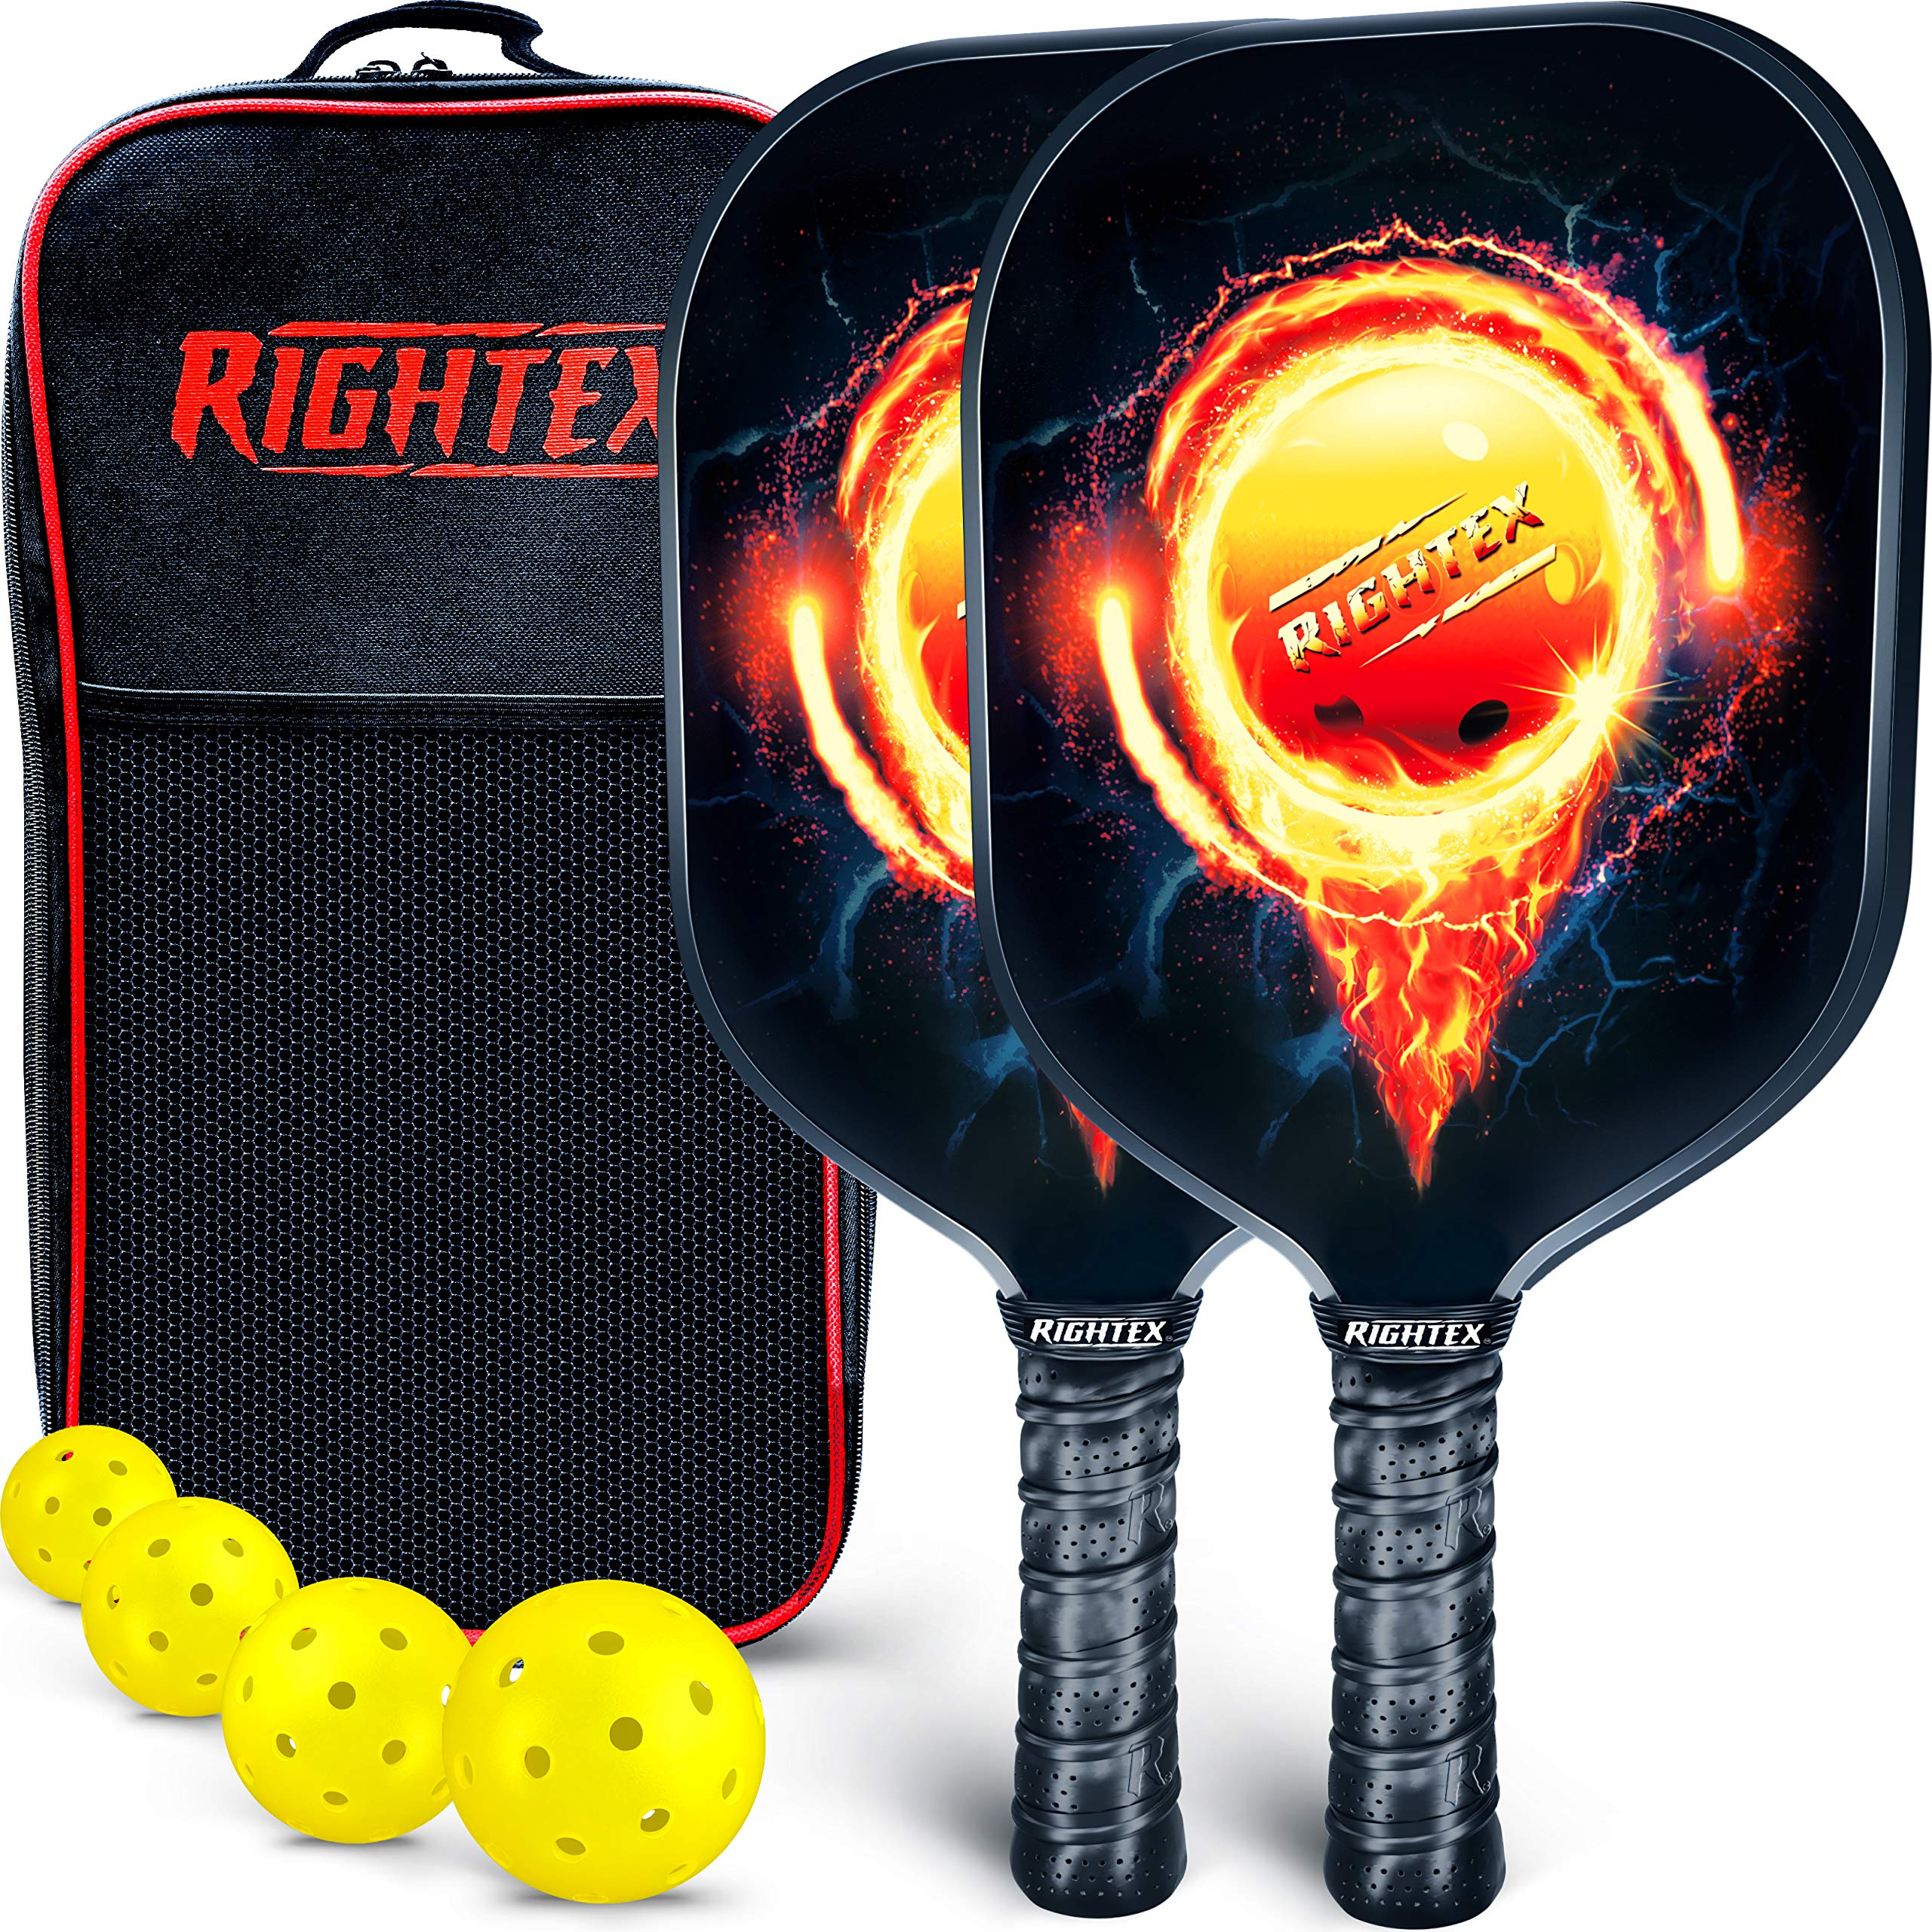 Cushion Grip Iconic Paddles Pickleball Paddle/ Protective Neoprene Cover Multiple Color Options /Graphite Face with Polypropylene Honeycomb Composite Core